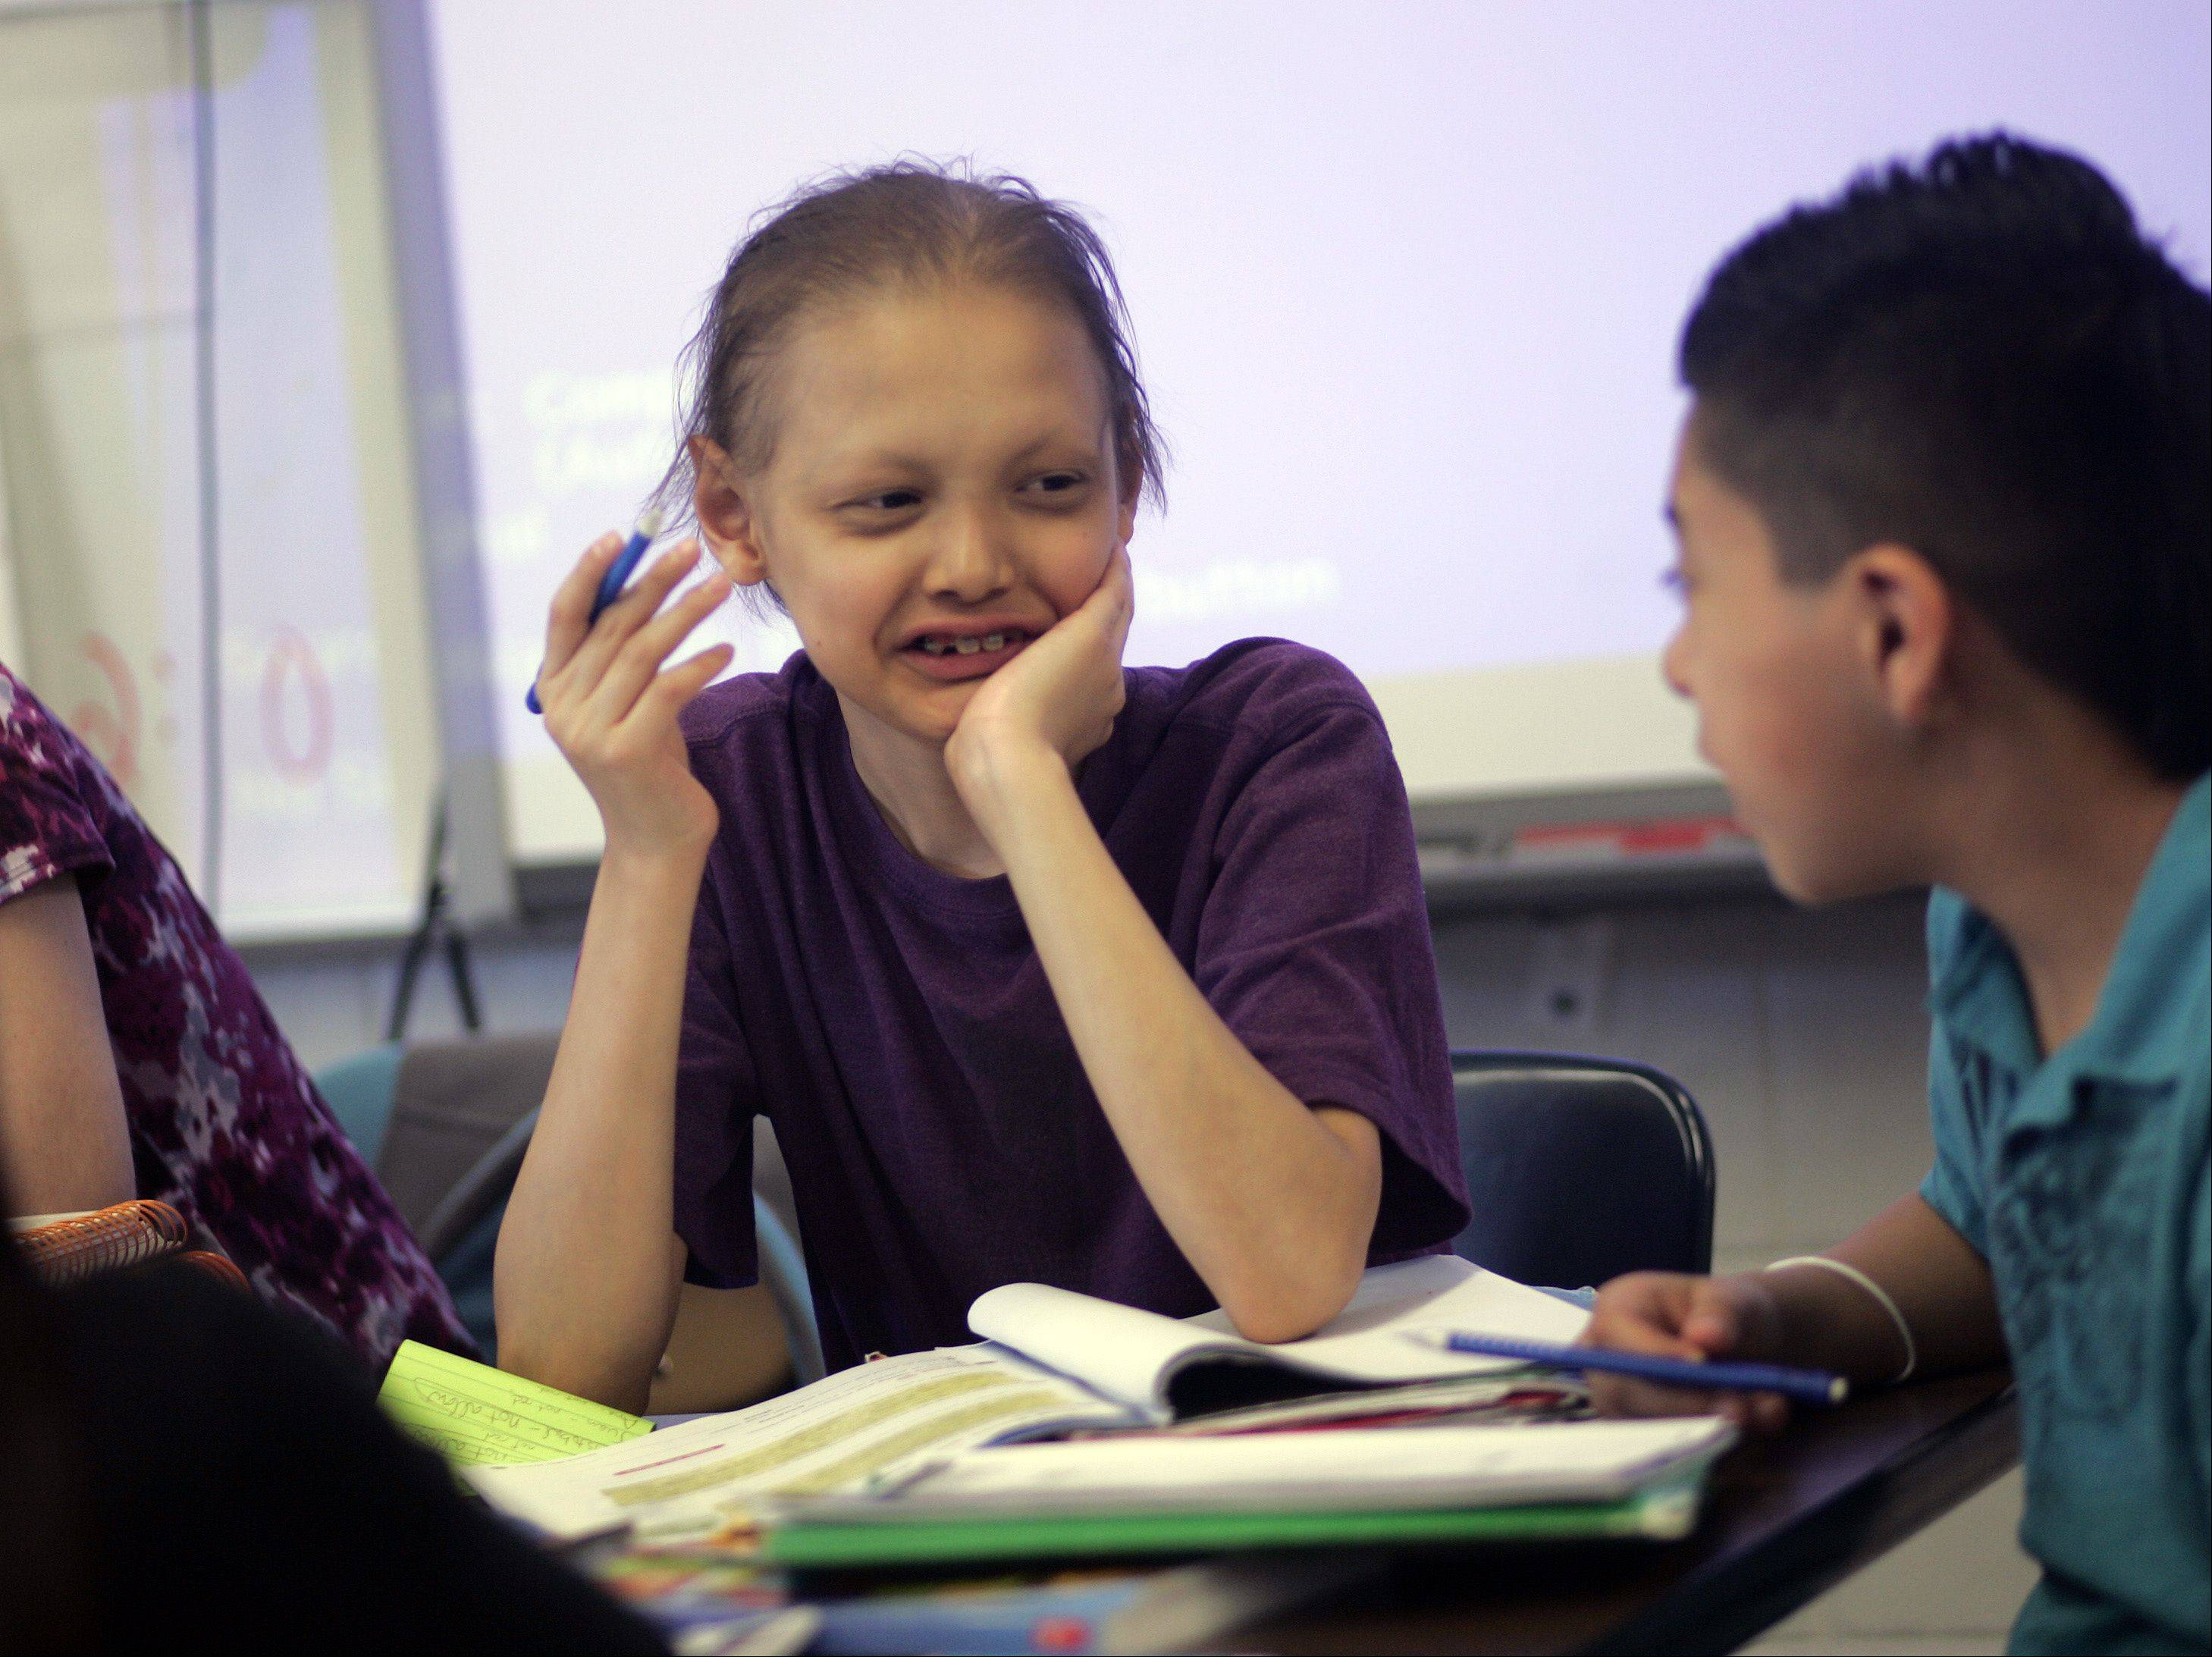 Eduardo Lopez Soriano, a fifth-grader from Lakewood School in Carpentersville, shares a laugh with one of his classmates.